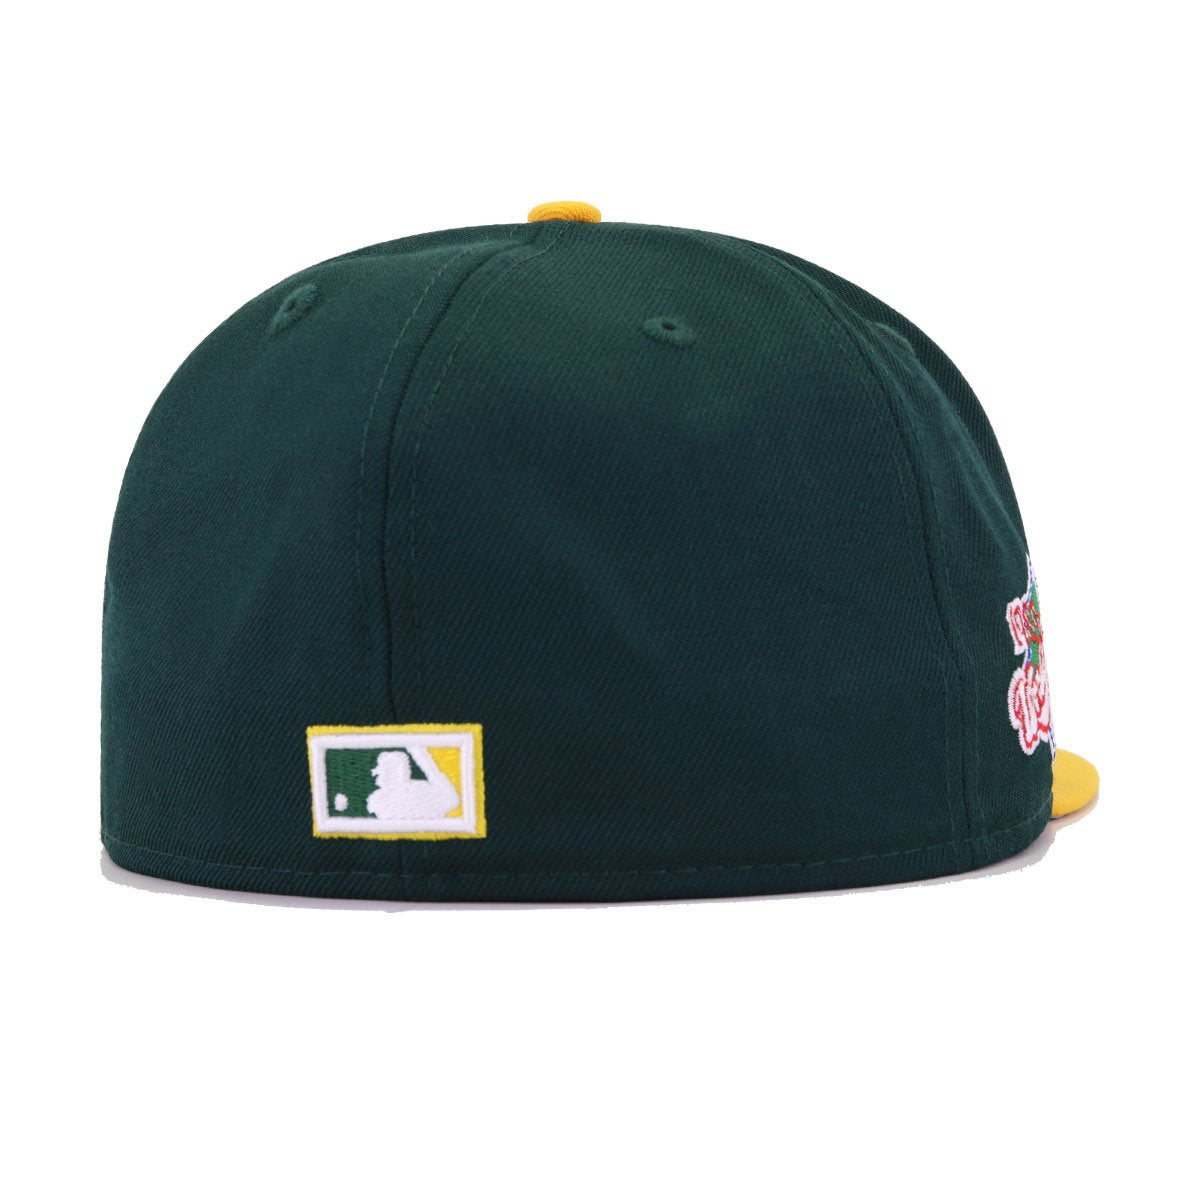 Oakland Athletics Dark Green A's Gold 1989 World Series New Era 59Fifty Fitted